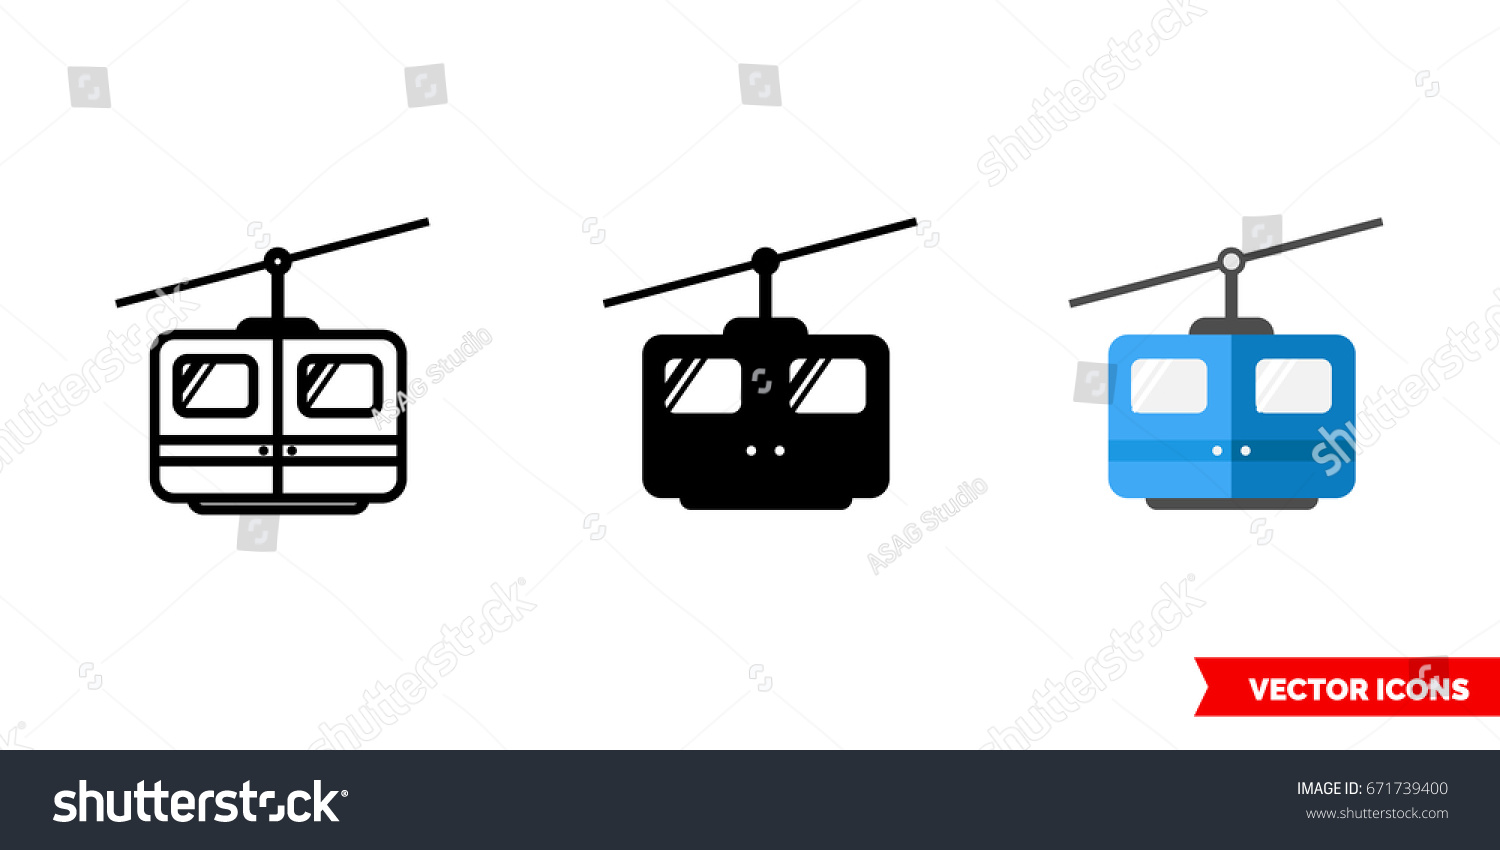 Cable Car Icon 3 Types Color Stock Vector HD (Royalty Free ...